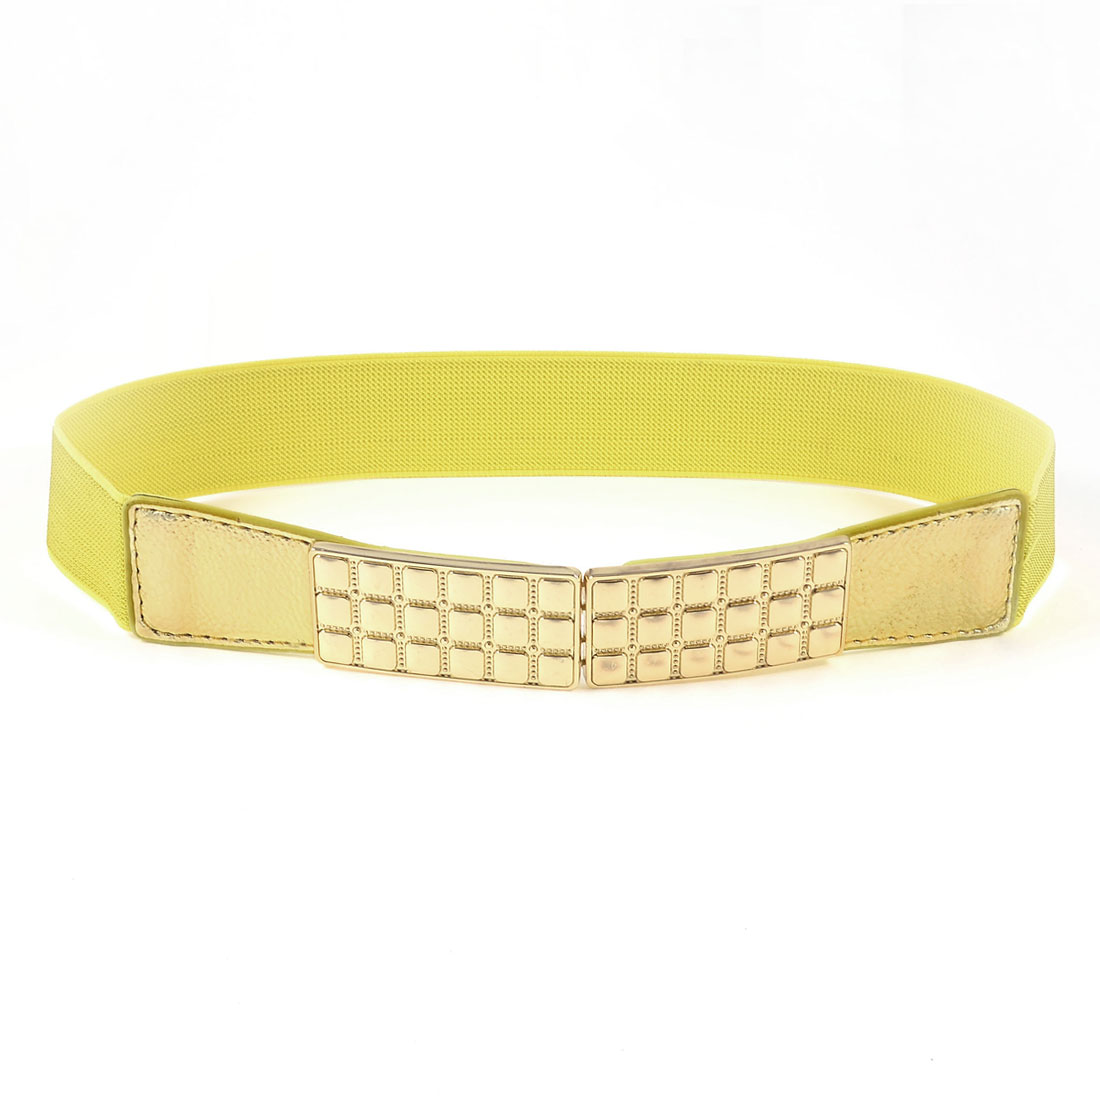 Gold Tone Metal Plate Hook Buckle Yellow Elastic Waist Belt for Women